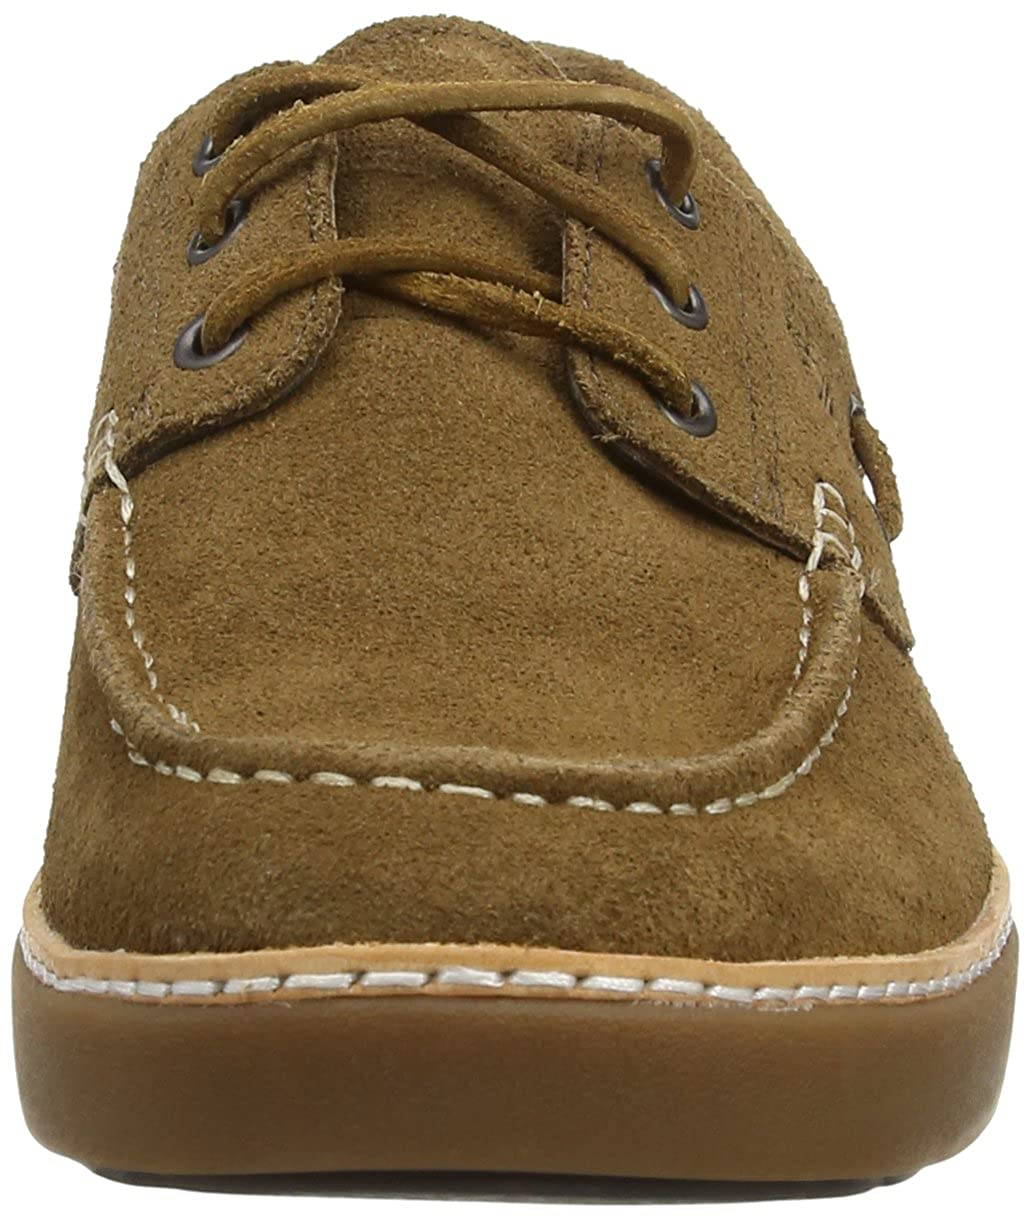 Timberland EK Hudston FTM_Boat Oxford, Mocasines para Hombre, marrón-Braun (Light Brown), 46 EU: Amazon.es: Zapatos y complementos